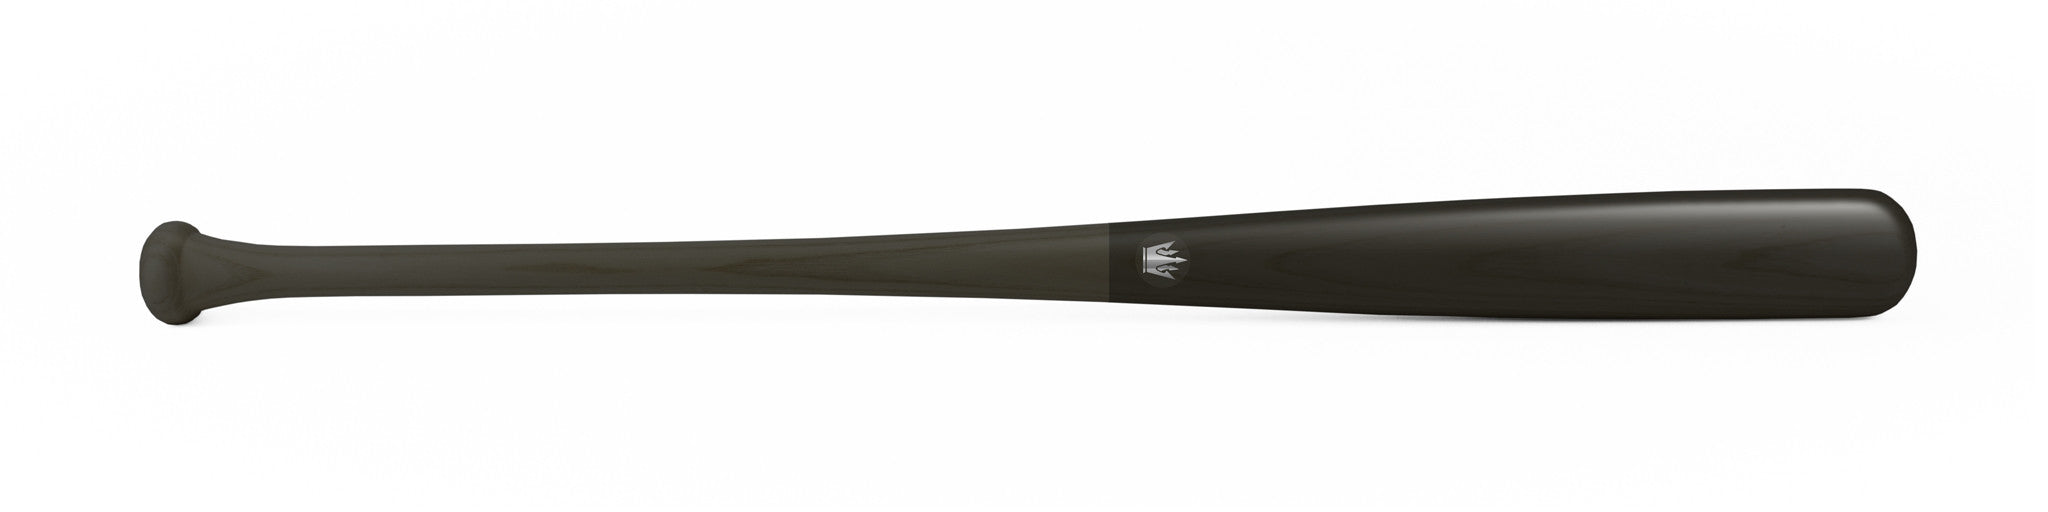 Wood bat - Ash model 110 Black Knight - 30